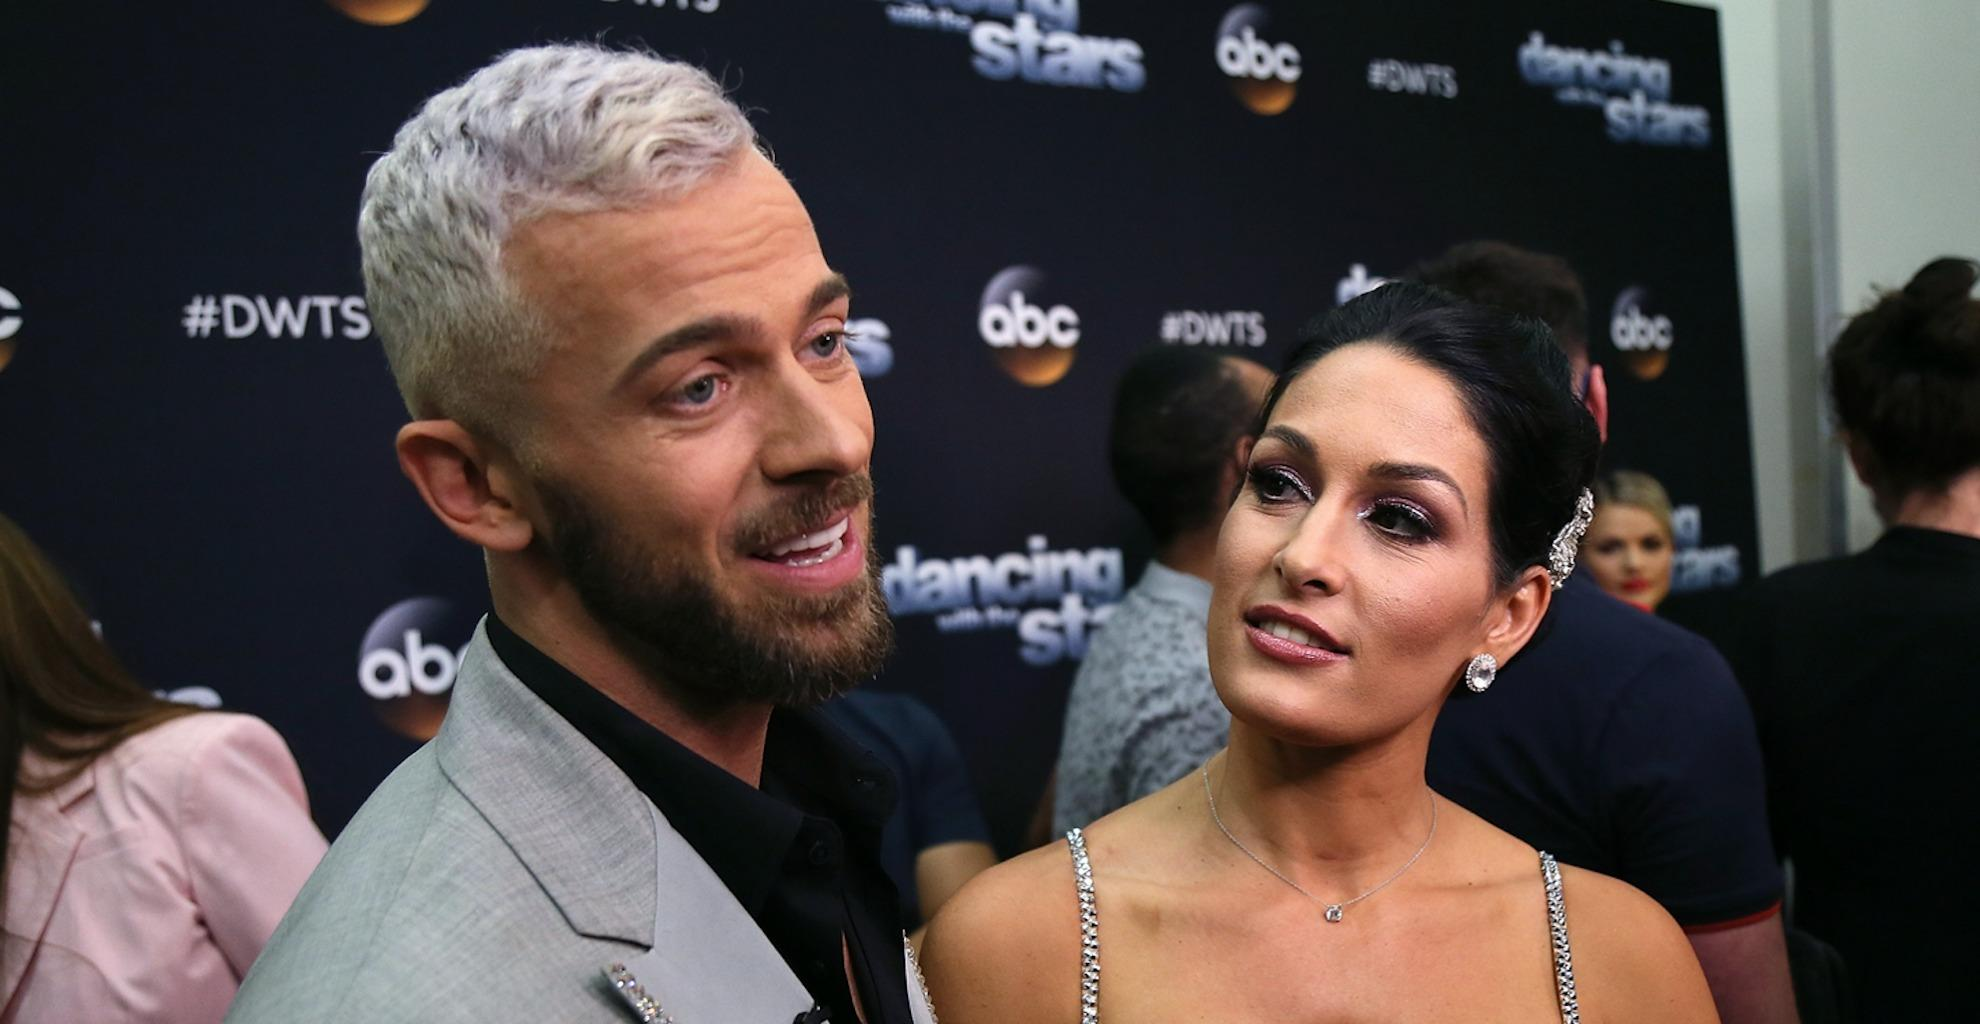 Nikki Bella Reveals She Took Carrie Ann Inaba's Side In Feud Against Artem Chigvintsev